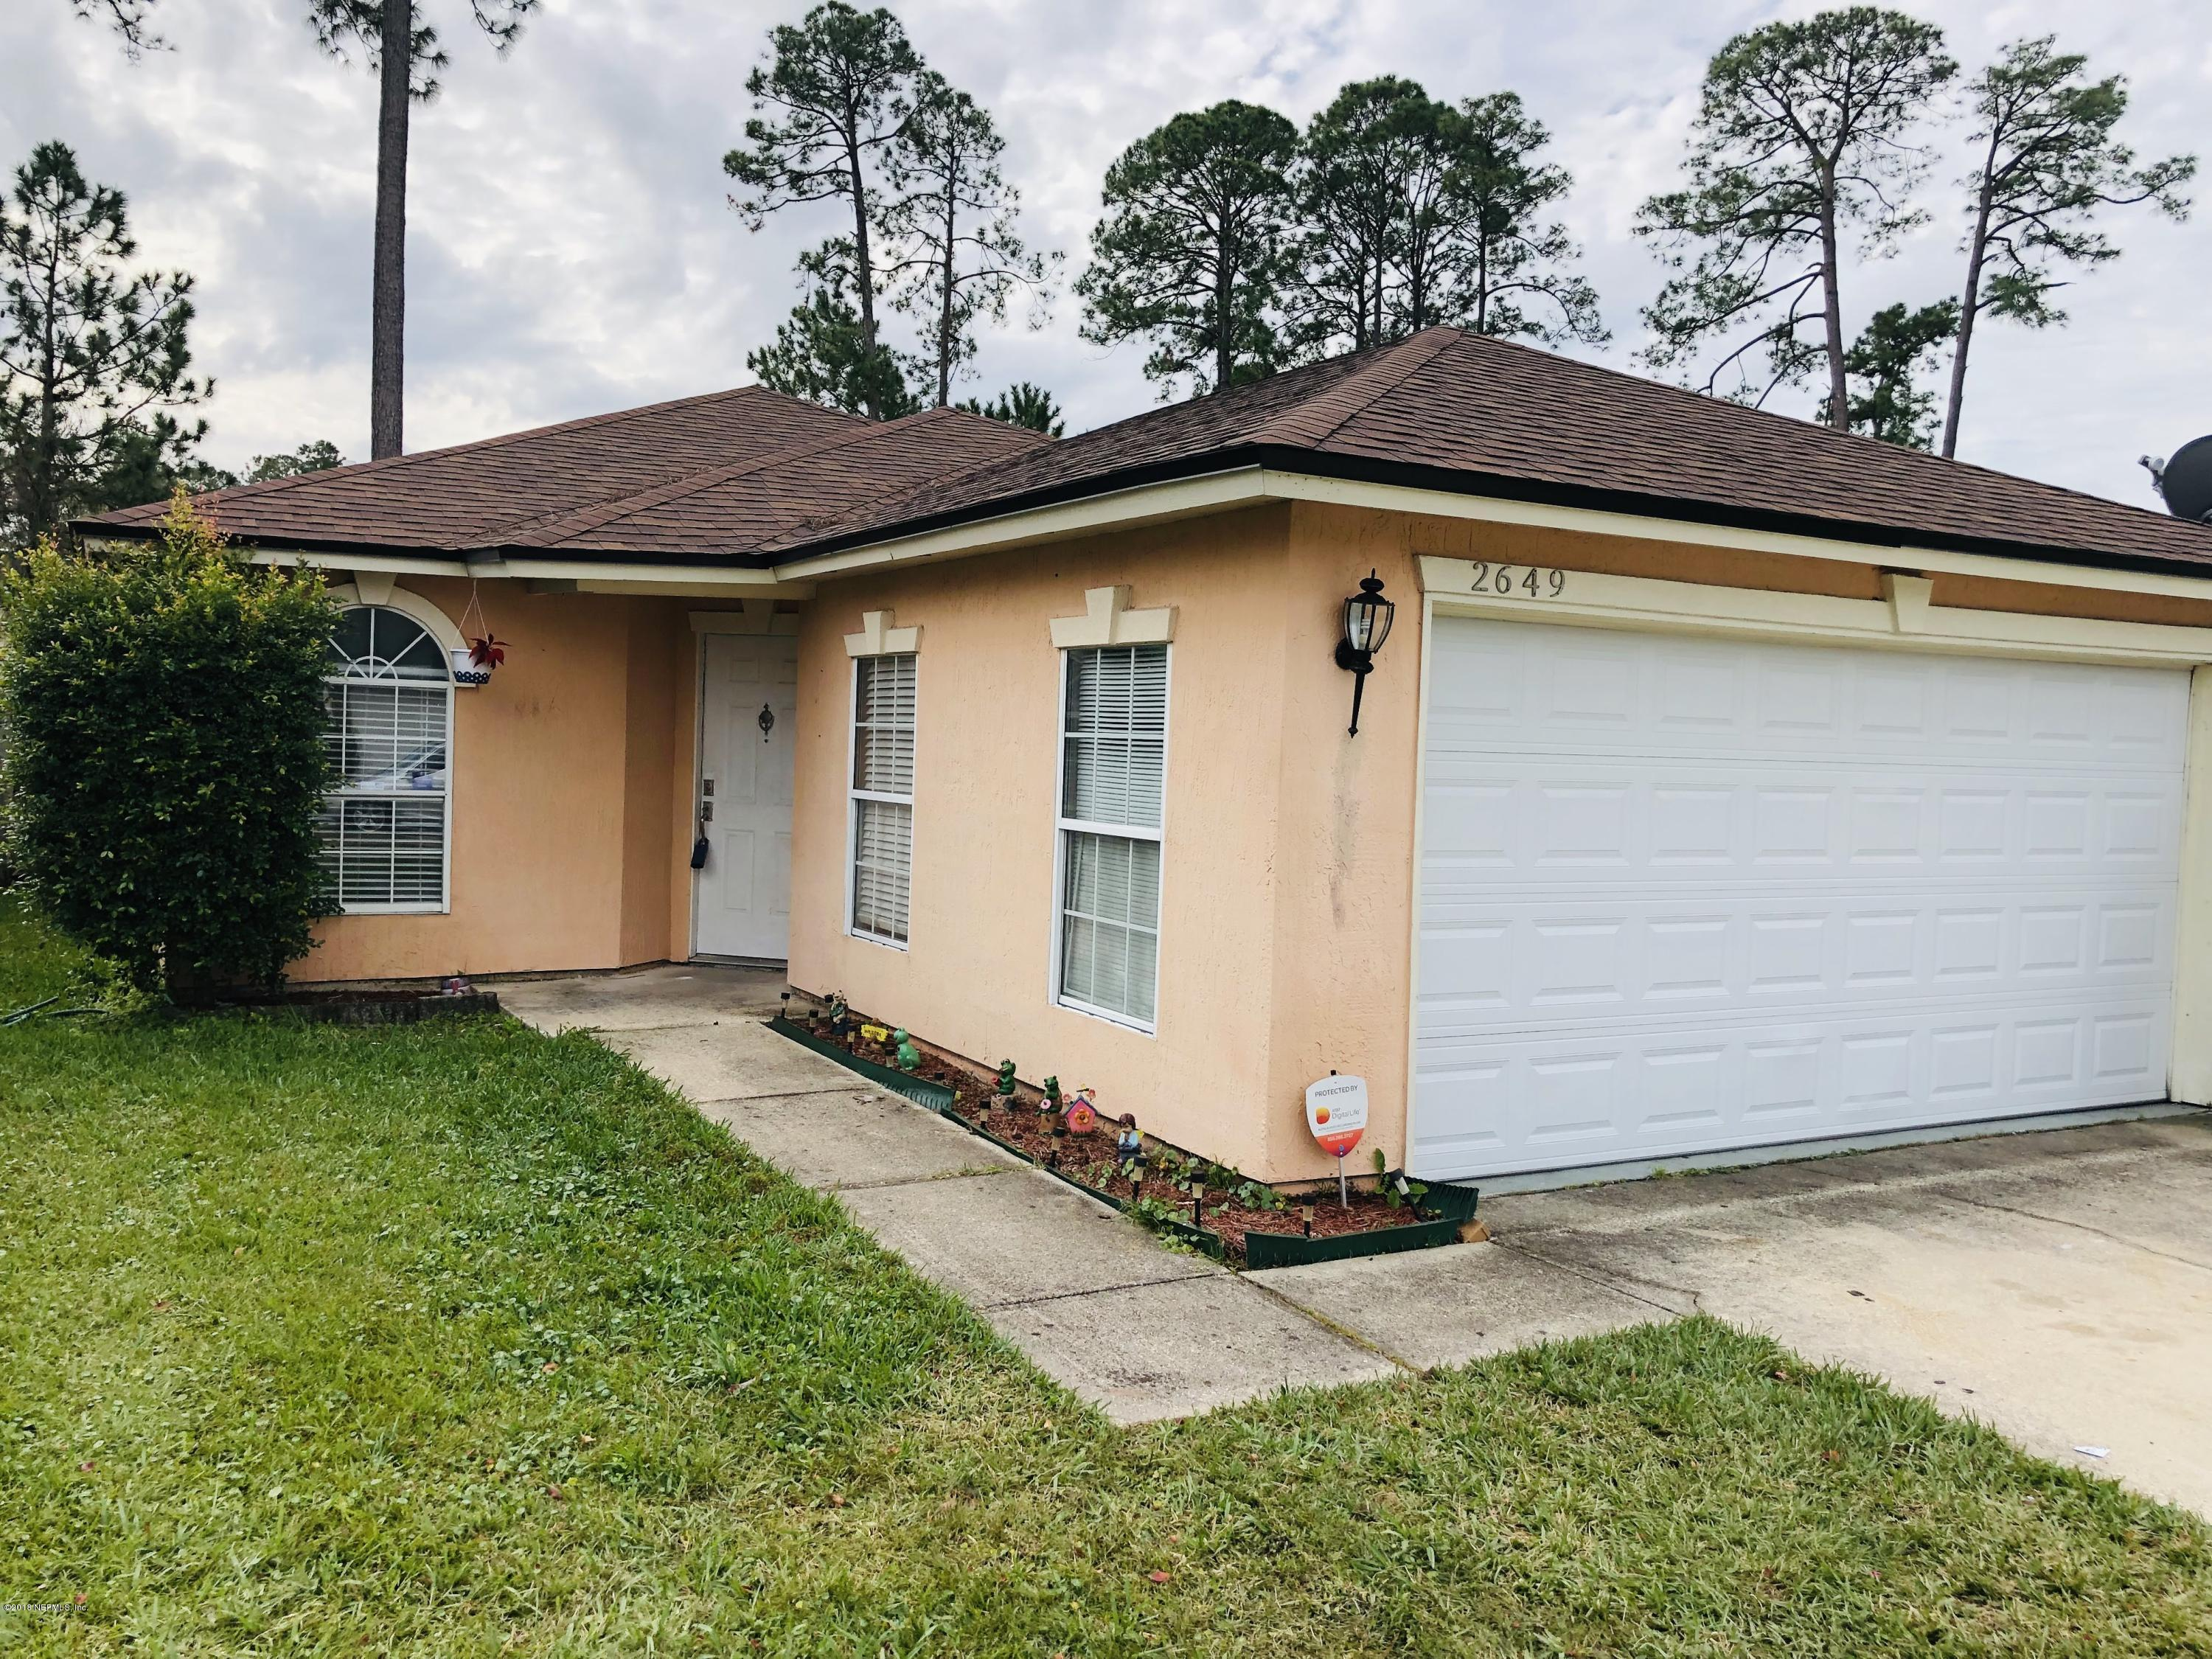 2649 SAM HOUSTON, JACKSONVILLE, FLORIDA 32246, 3 Bedrooms Bedrooms, ,2 BathroomsBathrooms,Residential - single family,For sale,SAM HOUSTON,970095